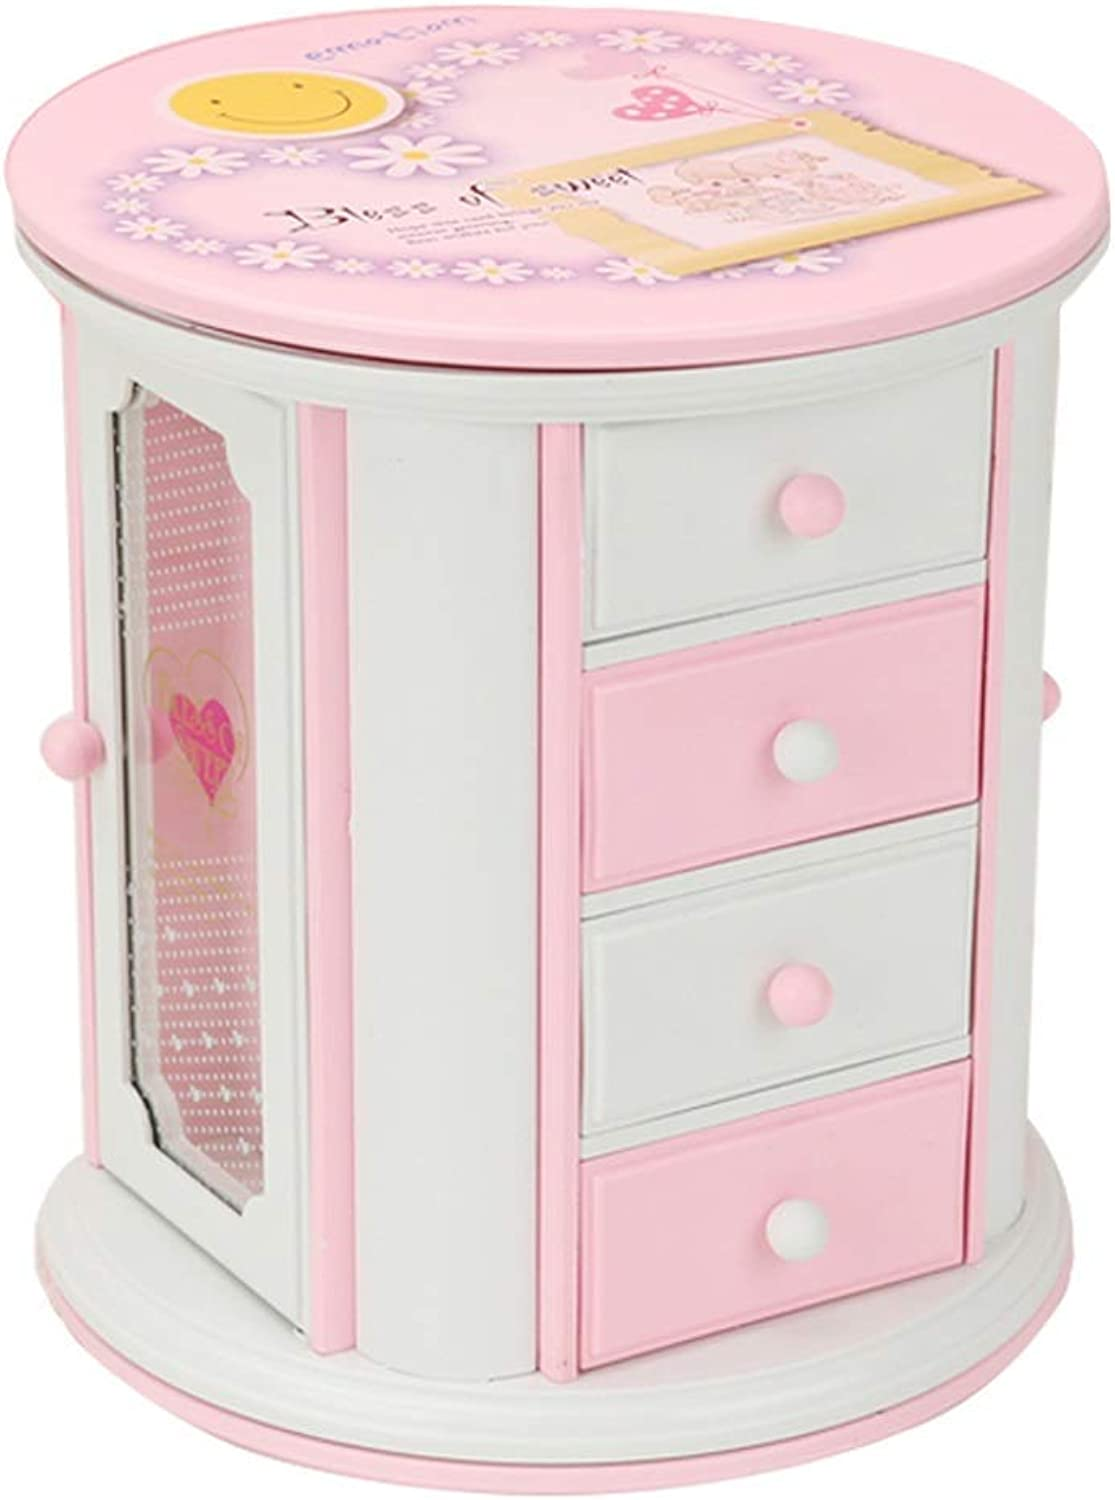 ZHAS Boxes Figures Musical Jewelry Box for Girls Extendable Drawer, storage box for classic jewelry, birthday